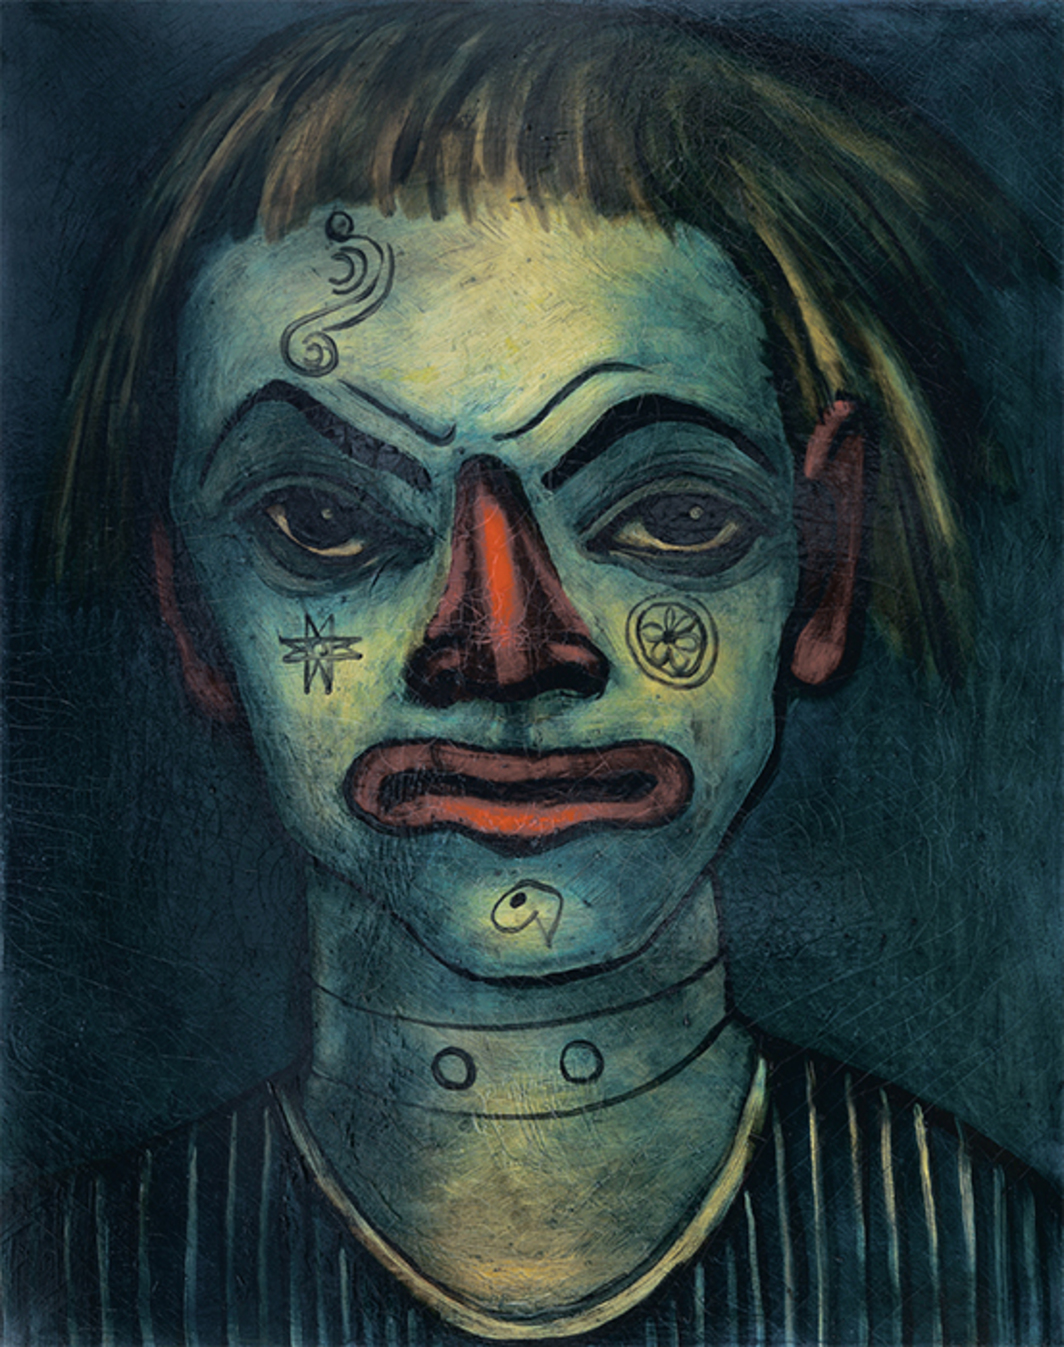 "*Francis Picabia, _Le Clown Fratellini_, 1937–38*, oil on canvas, 36 1/4 × 28 3/4"". © Artists Rights Society (ARS), New York/ADAGP, Paris."